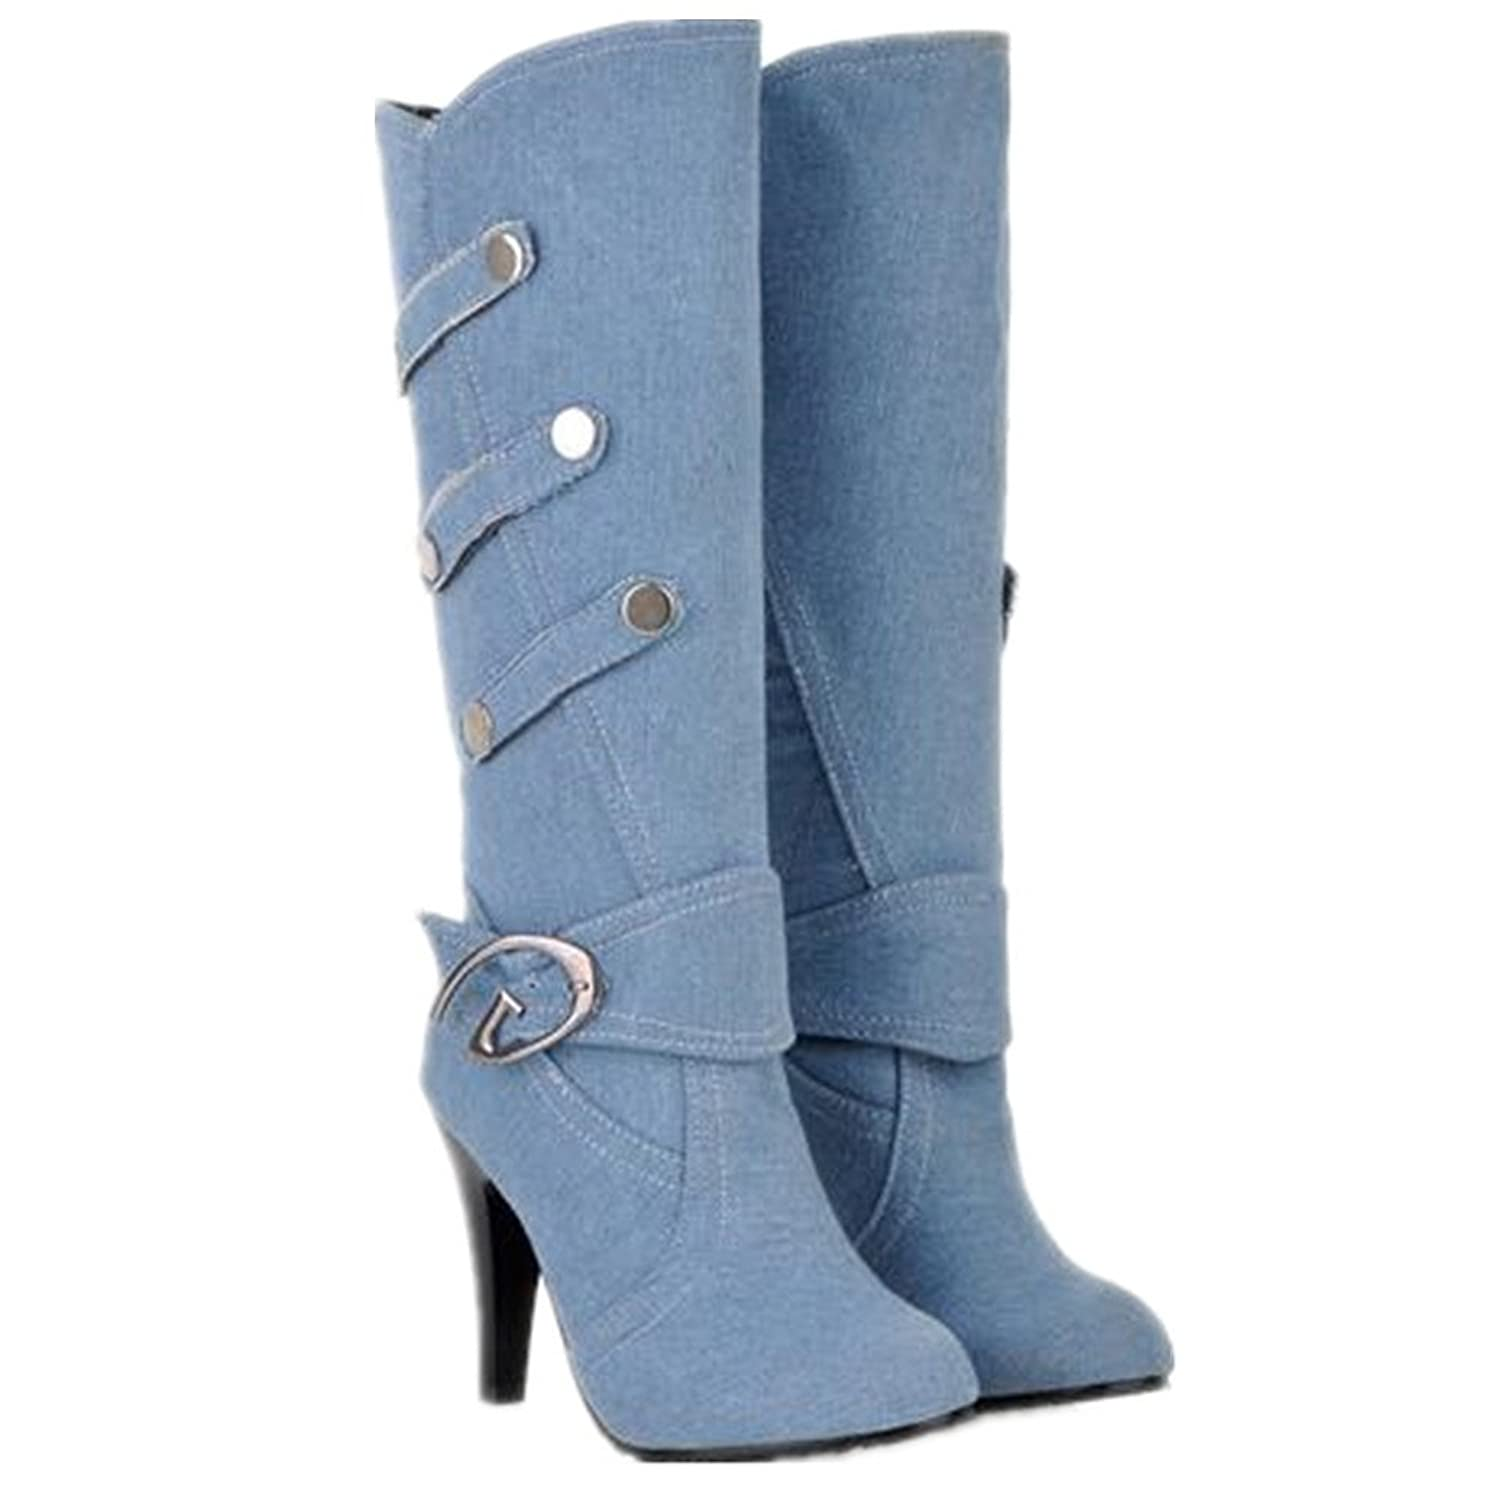 3 Colors Women's Winter Denim Motorcycle Thin High Heel Long Metal Buckle Warm Man made Short Plush Lining Knee High Martin Jeans Boots